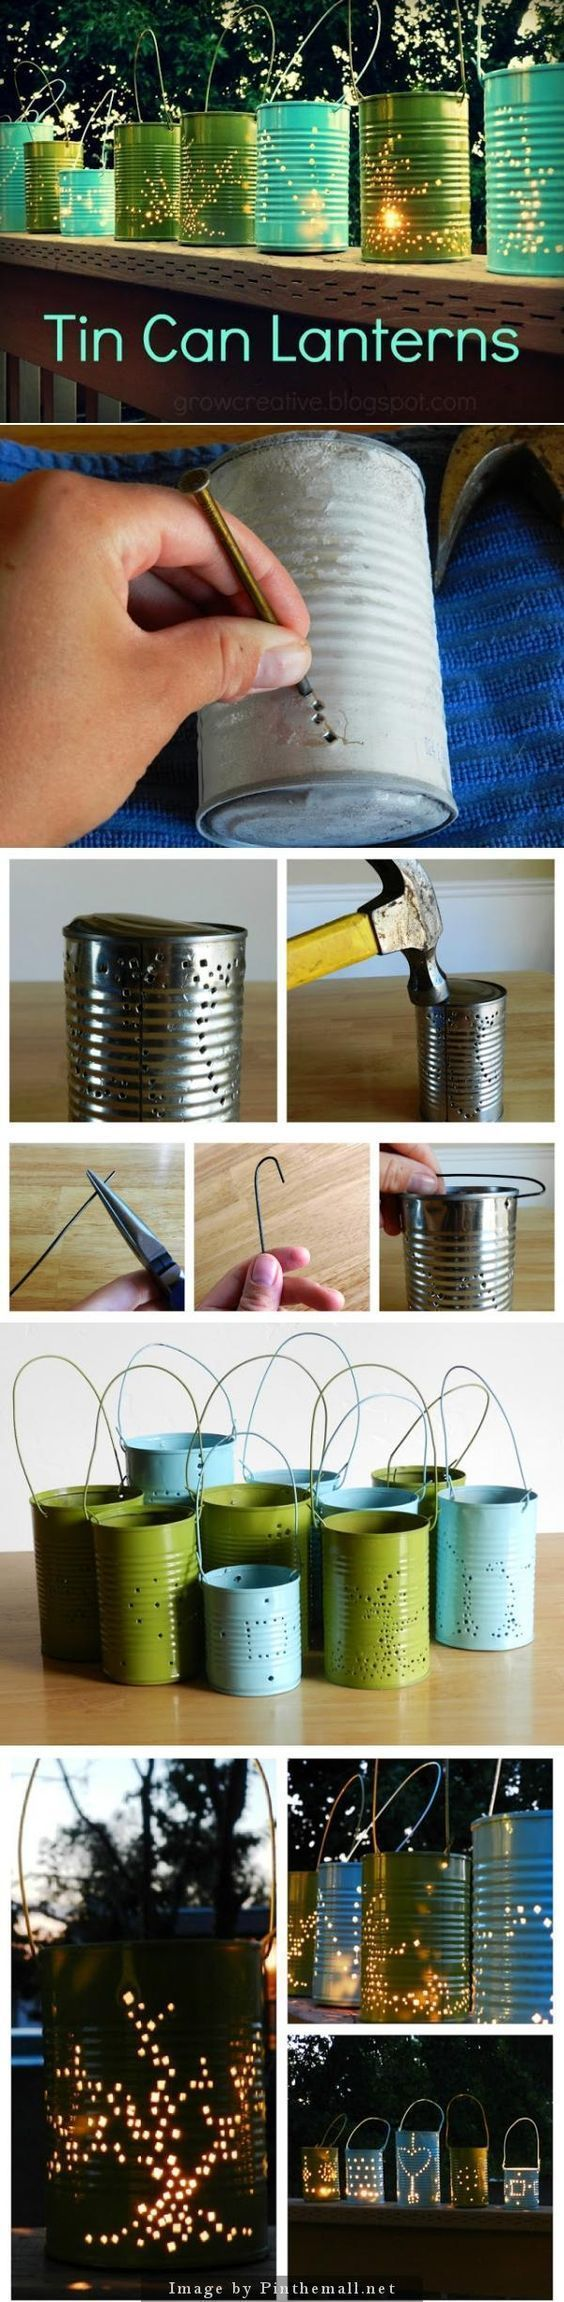 nice DIY Tin Can Lanterns Craft... by http://www.danazhomedecor.top/diy-crafts-home/diy-tin-can-lanterns-craft/